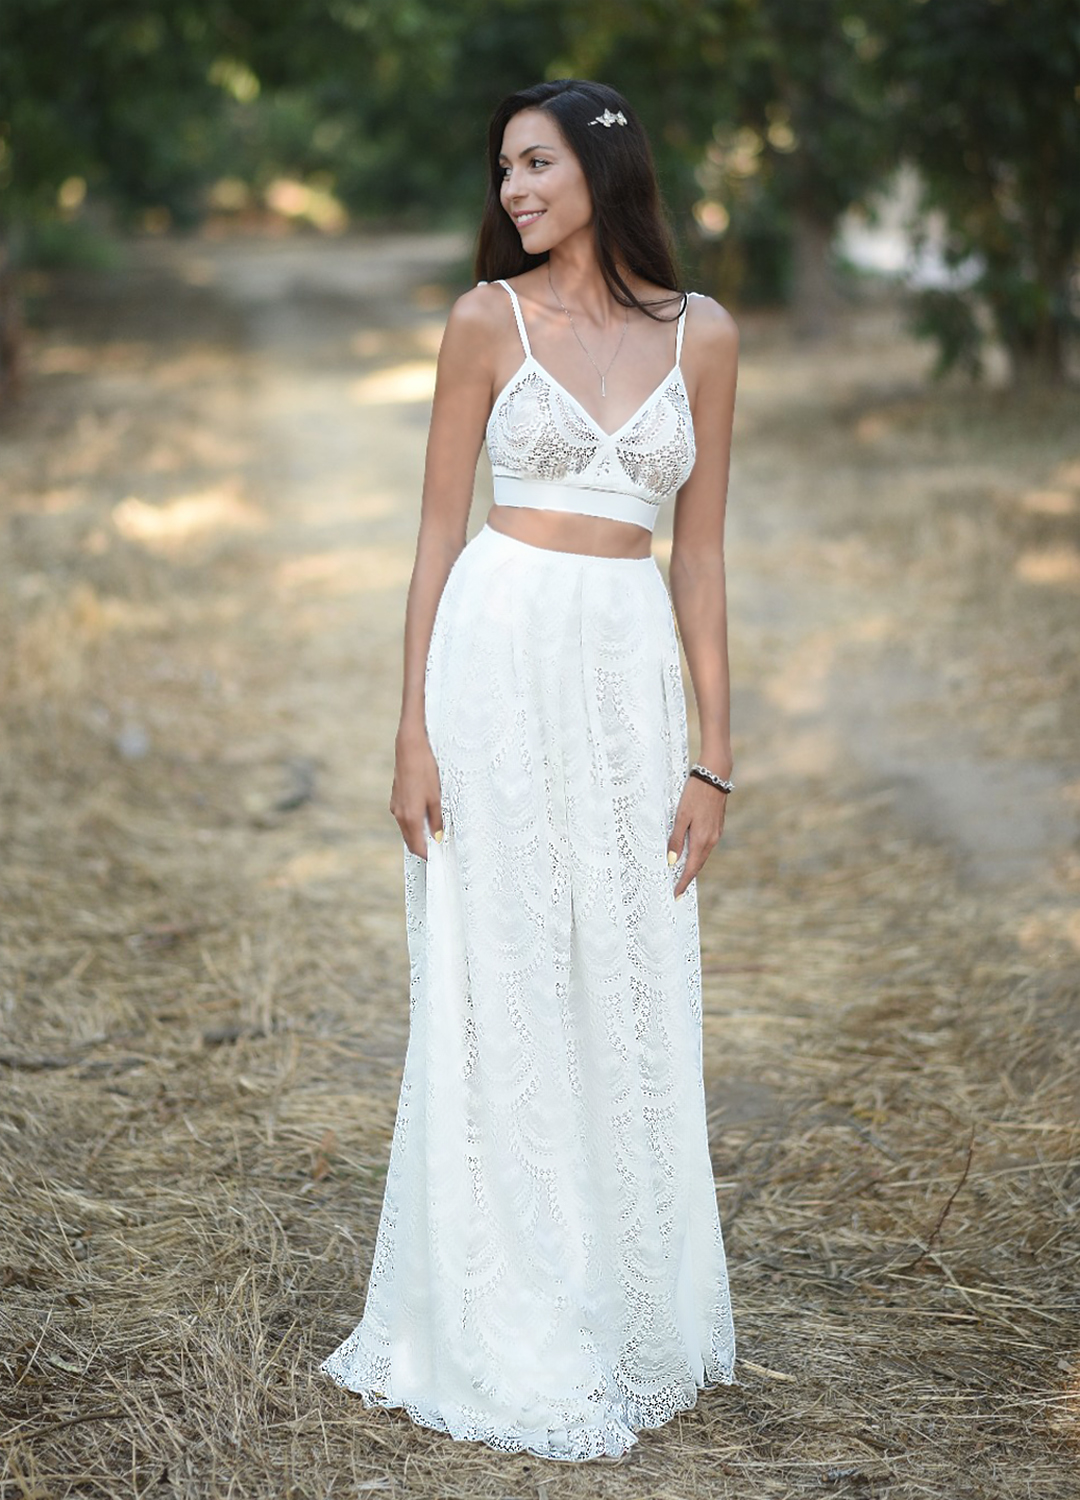 133-The MUSK Collection ELISH Bridal - 2